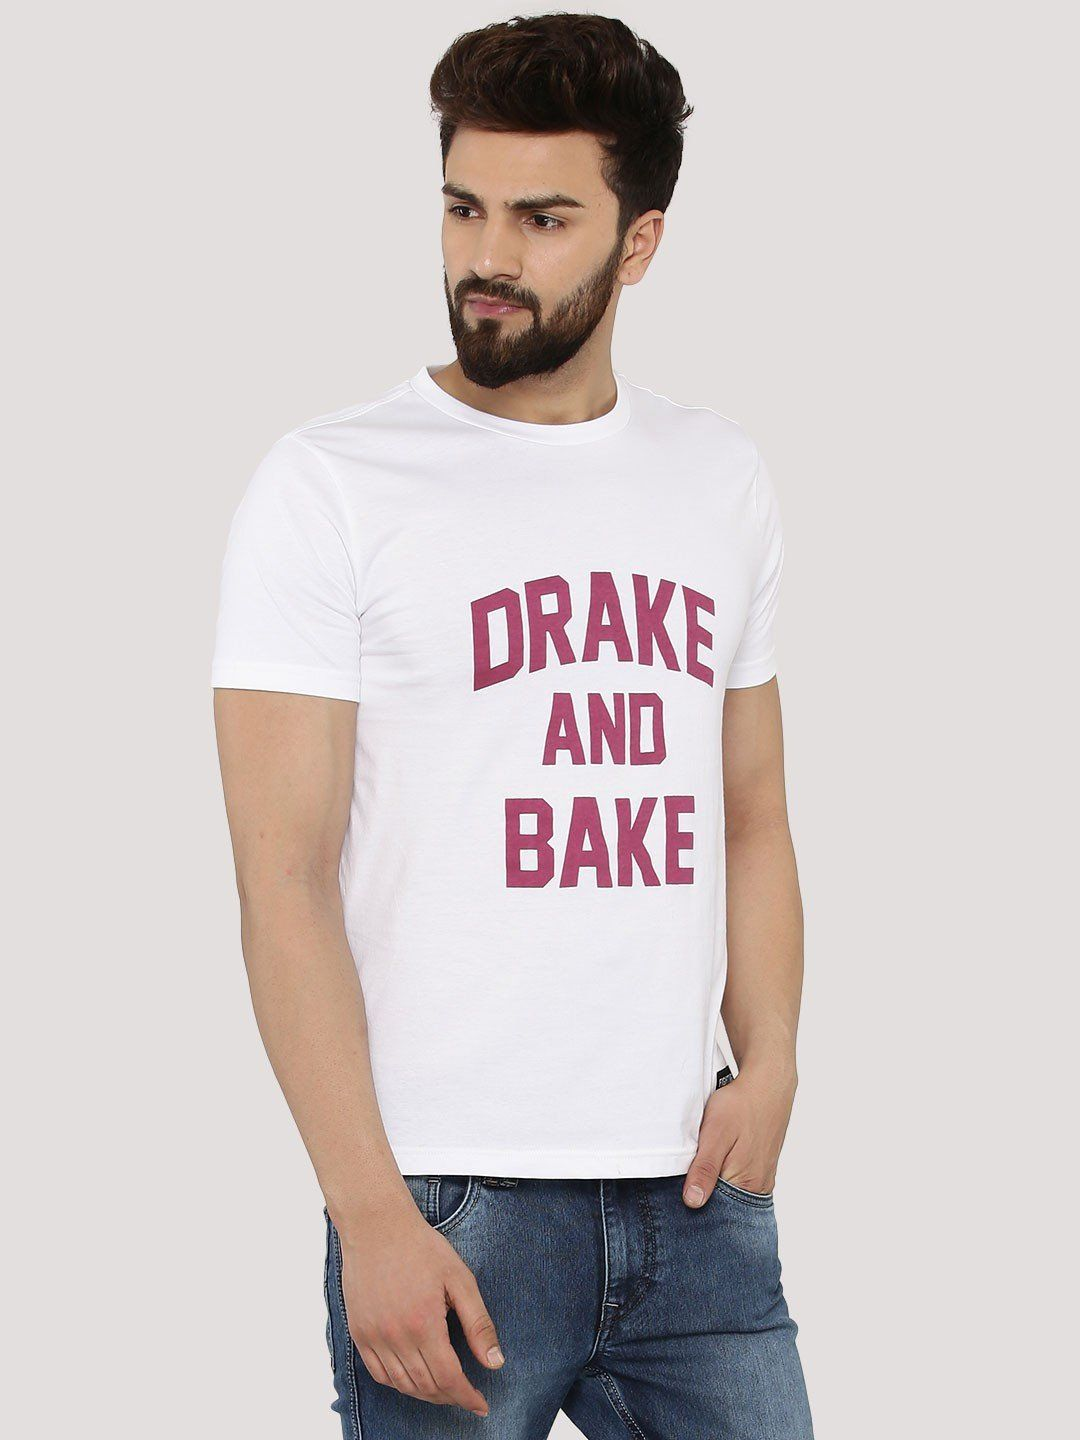 Drake And Bake White T-Shirt - Fighting Fame  - 3